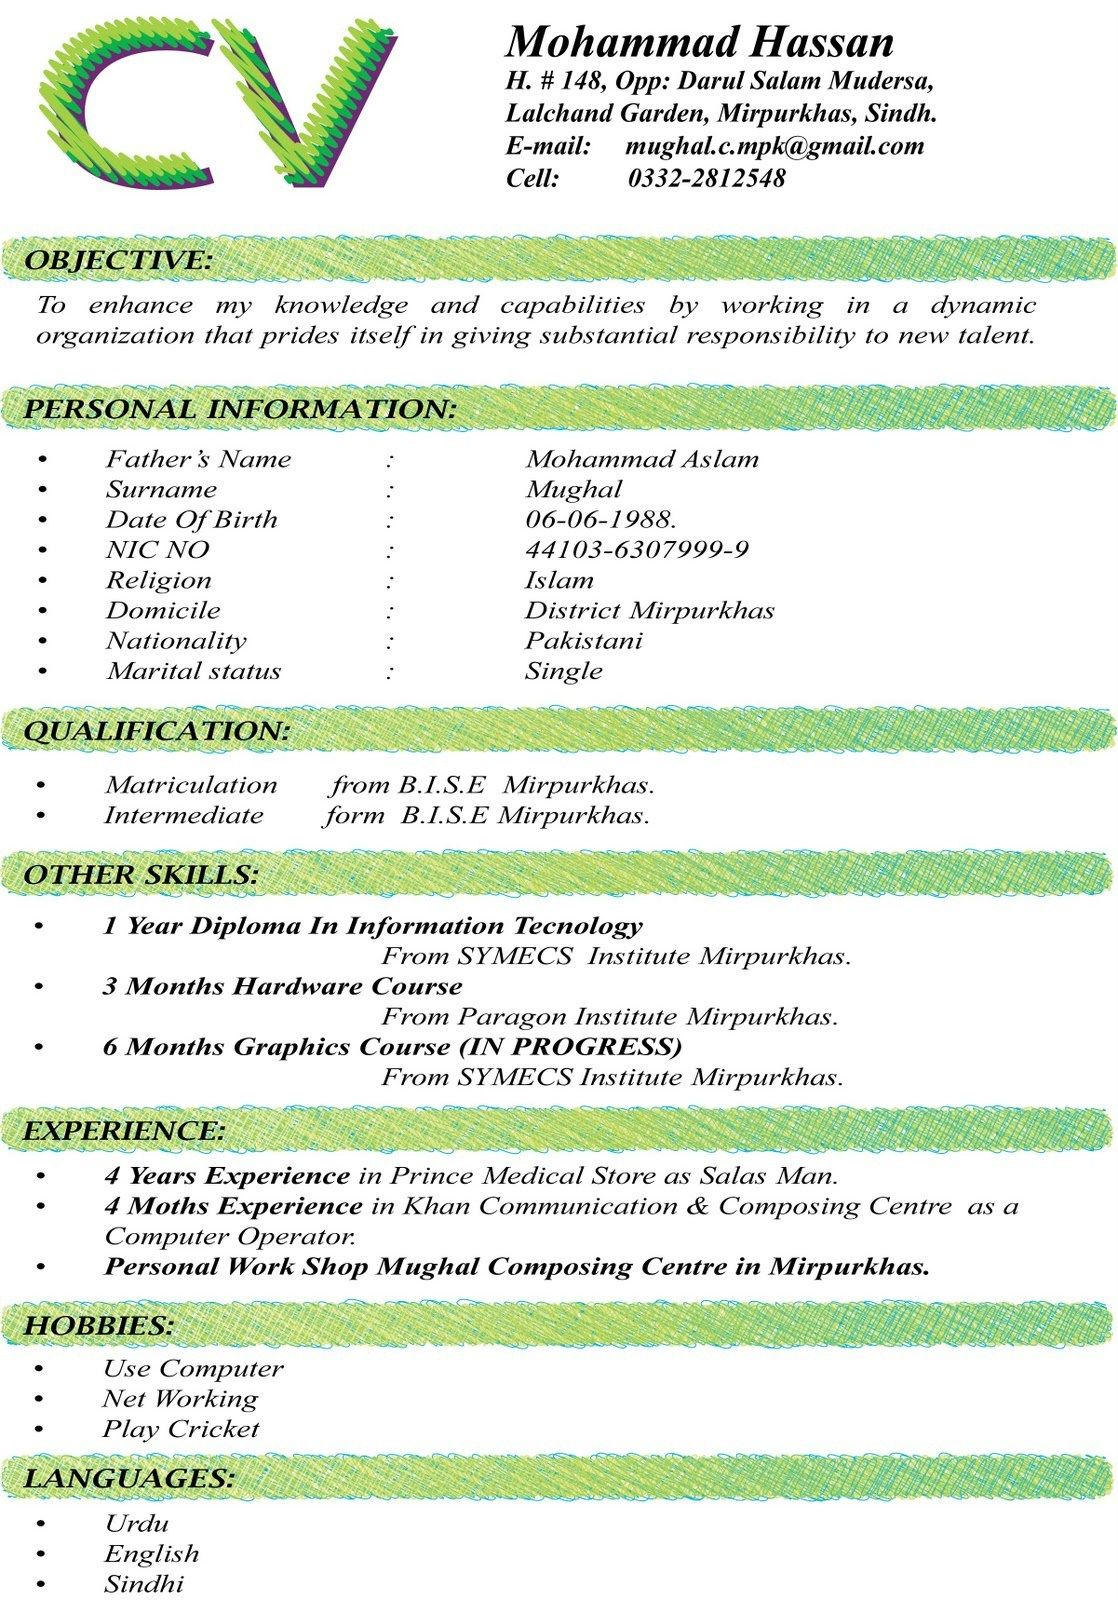 Cv format to download free cv templates download cv format format cv format to download free cv templates download cv format format cv sample yelopaper Gallery